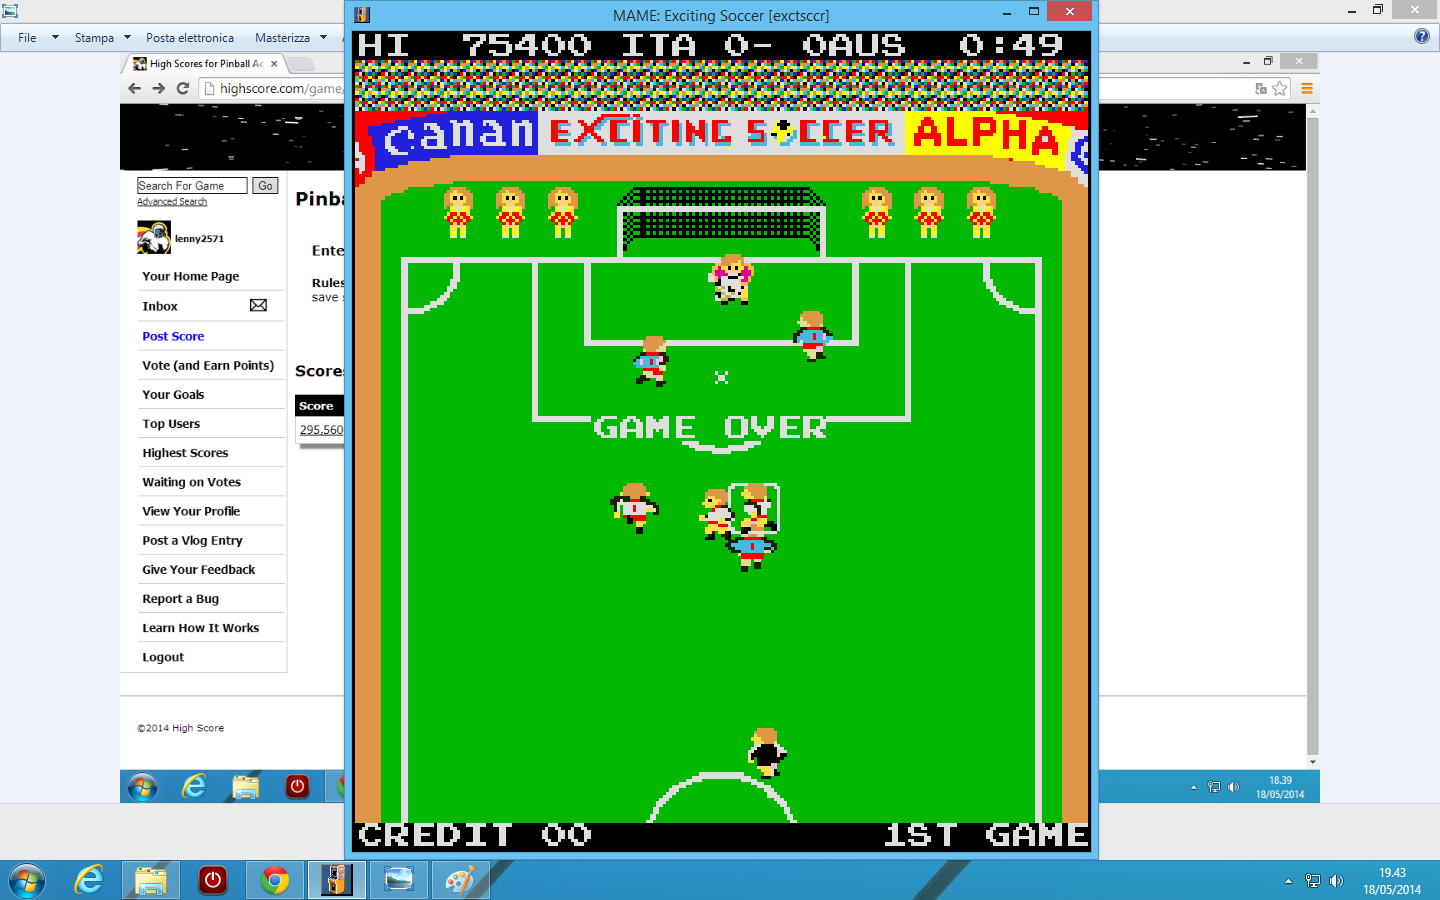 Exciting Soccer [exctsccr] 75,400 points